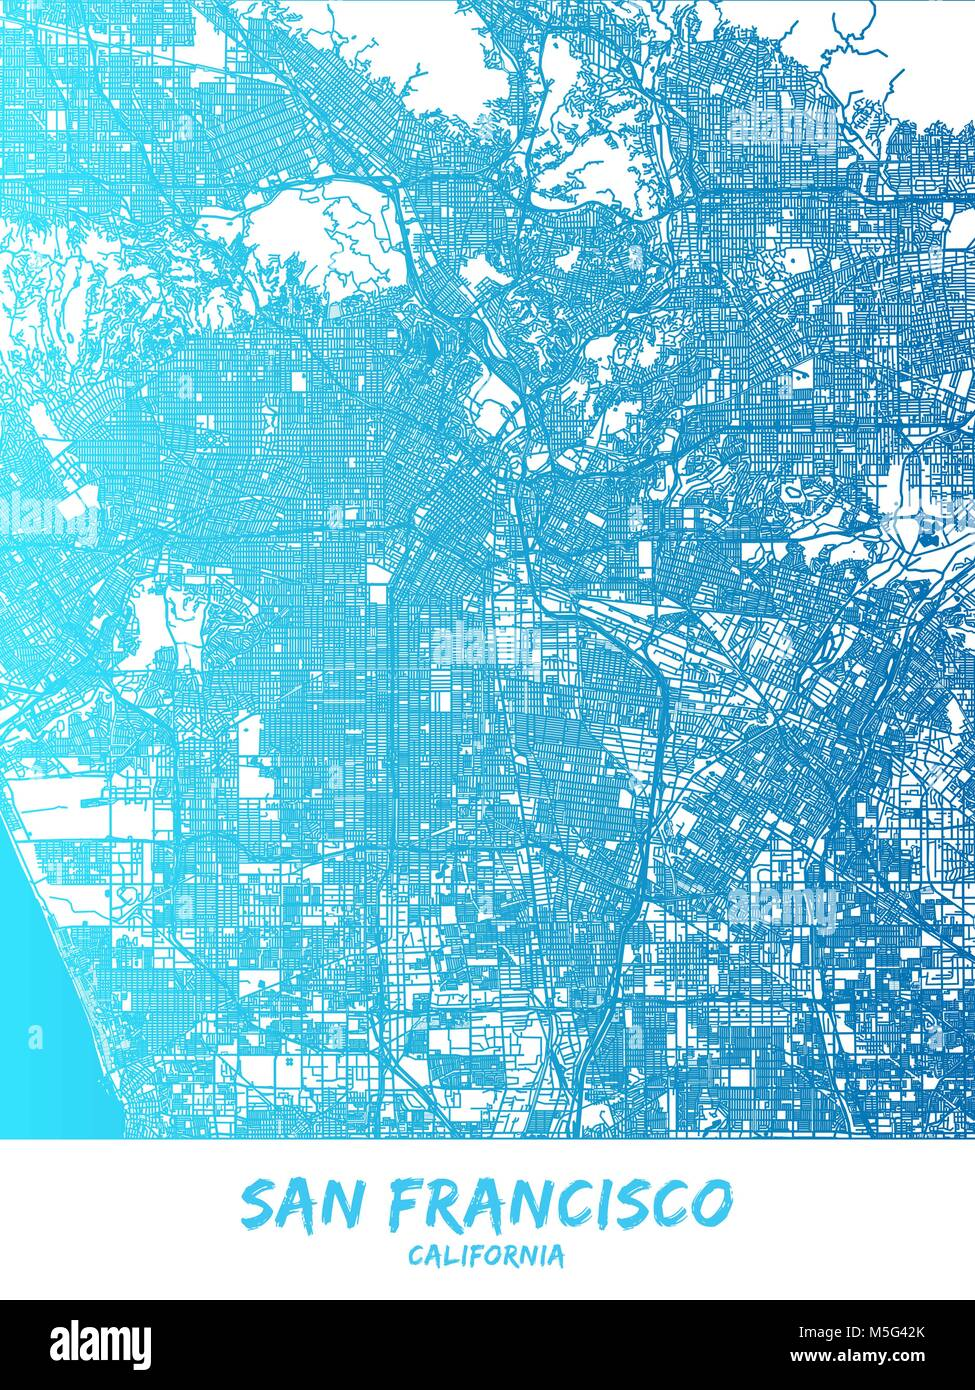 Los Angeles downtown and surroundings Map in blue shaded version